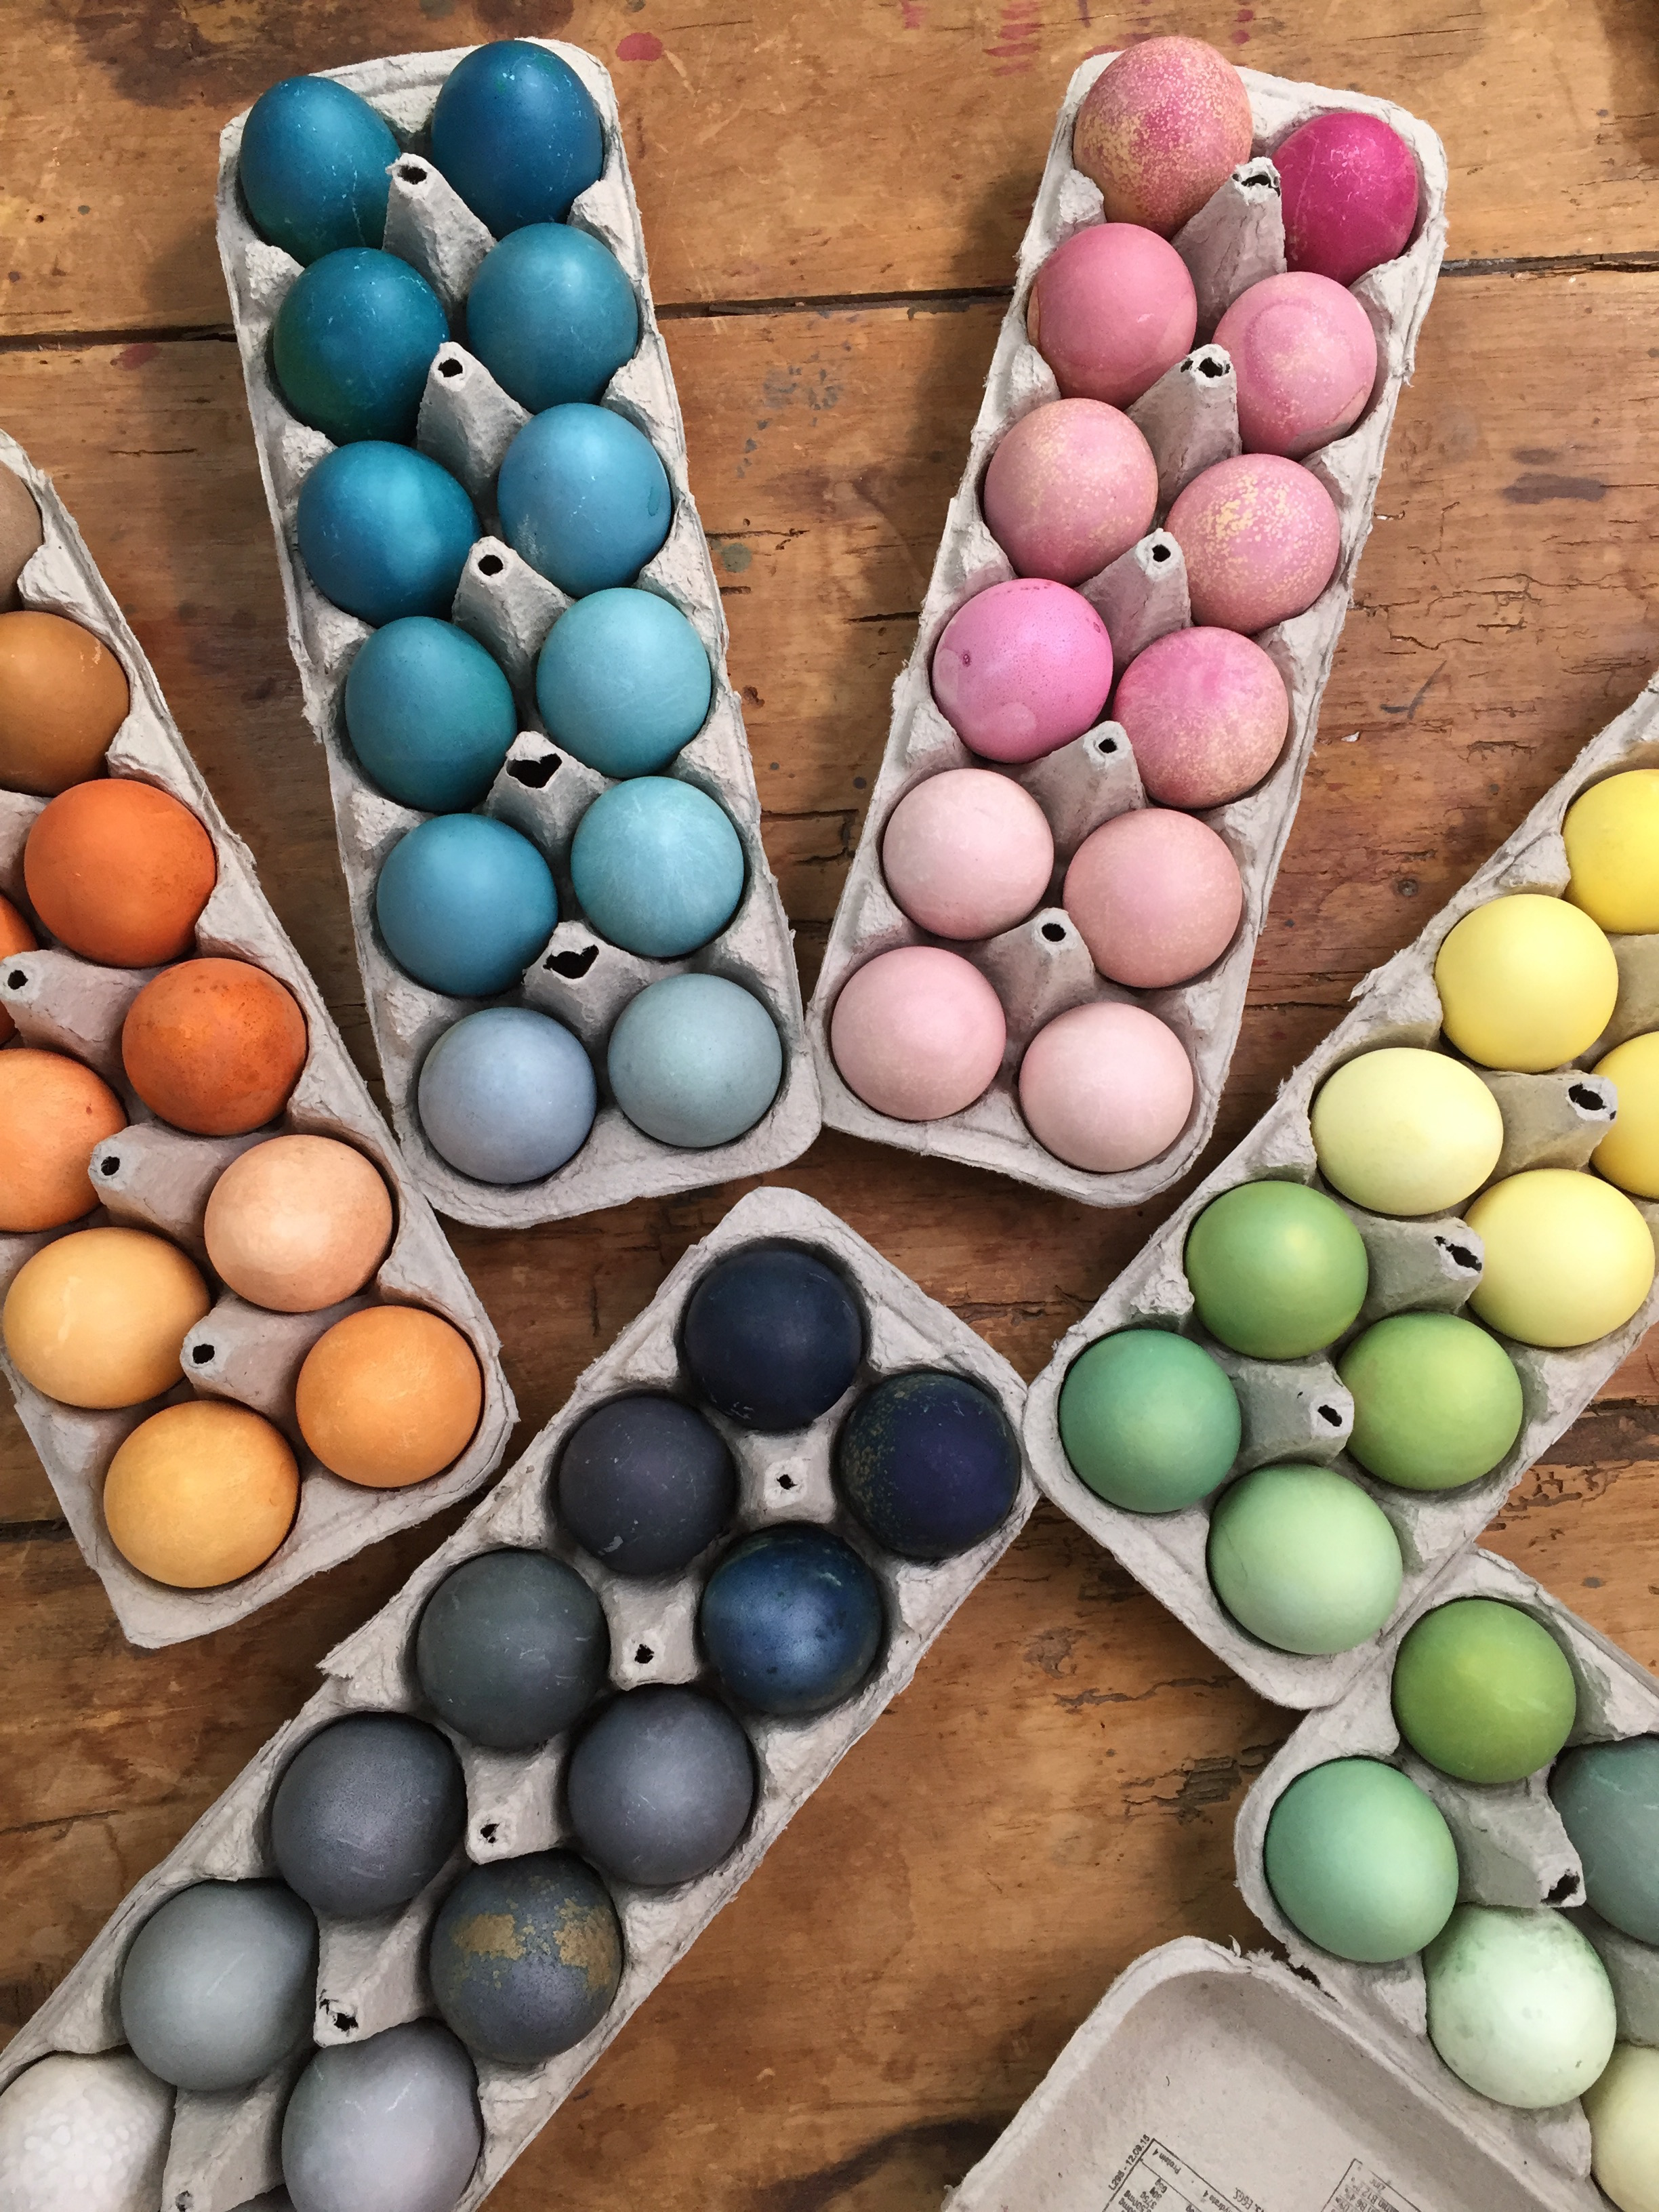 Dyeing Easter Eggs The Natural Way Whole Foods Market